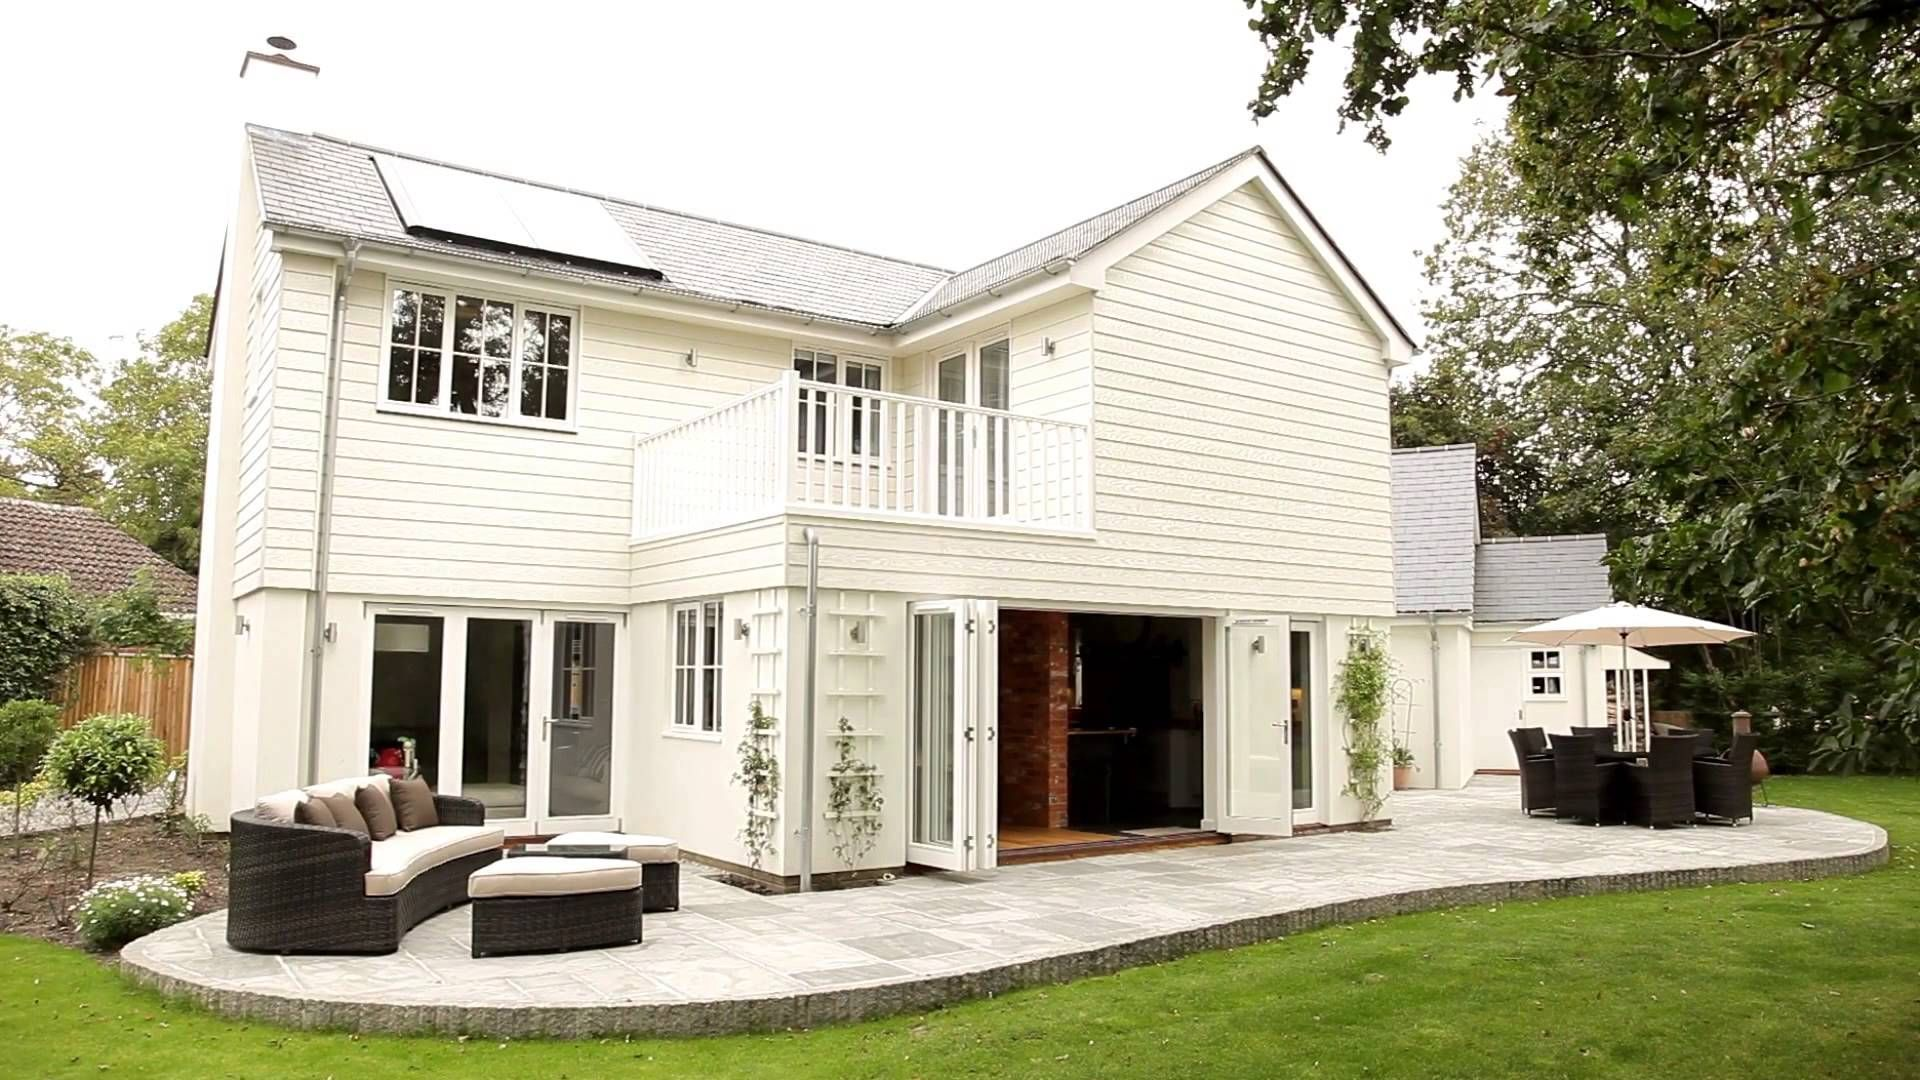 Beautiful Wood Homes Uk Pictures Inspiration - Home Decorating ...